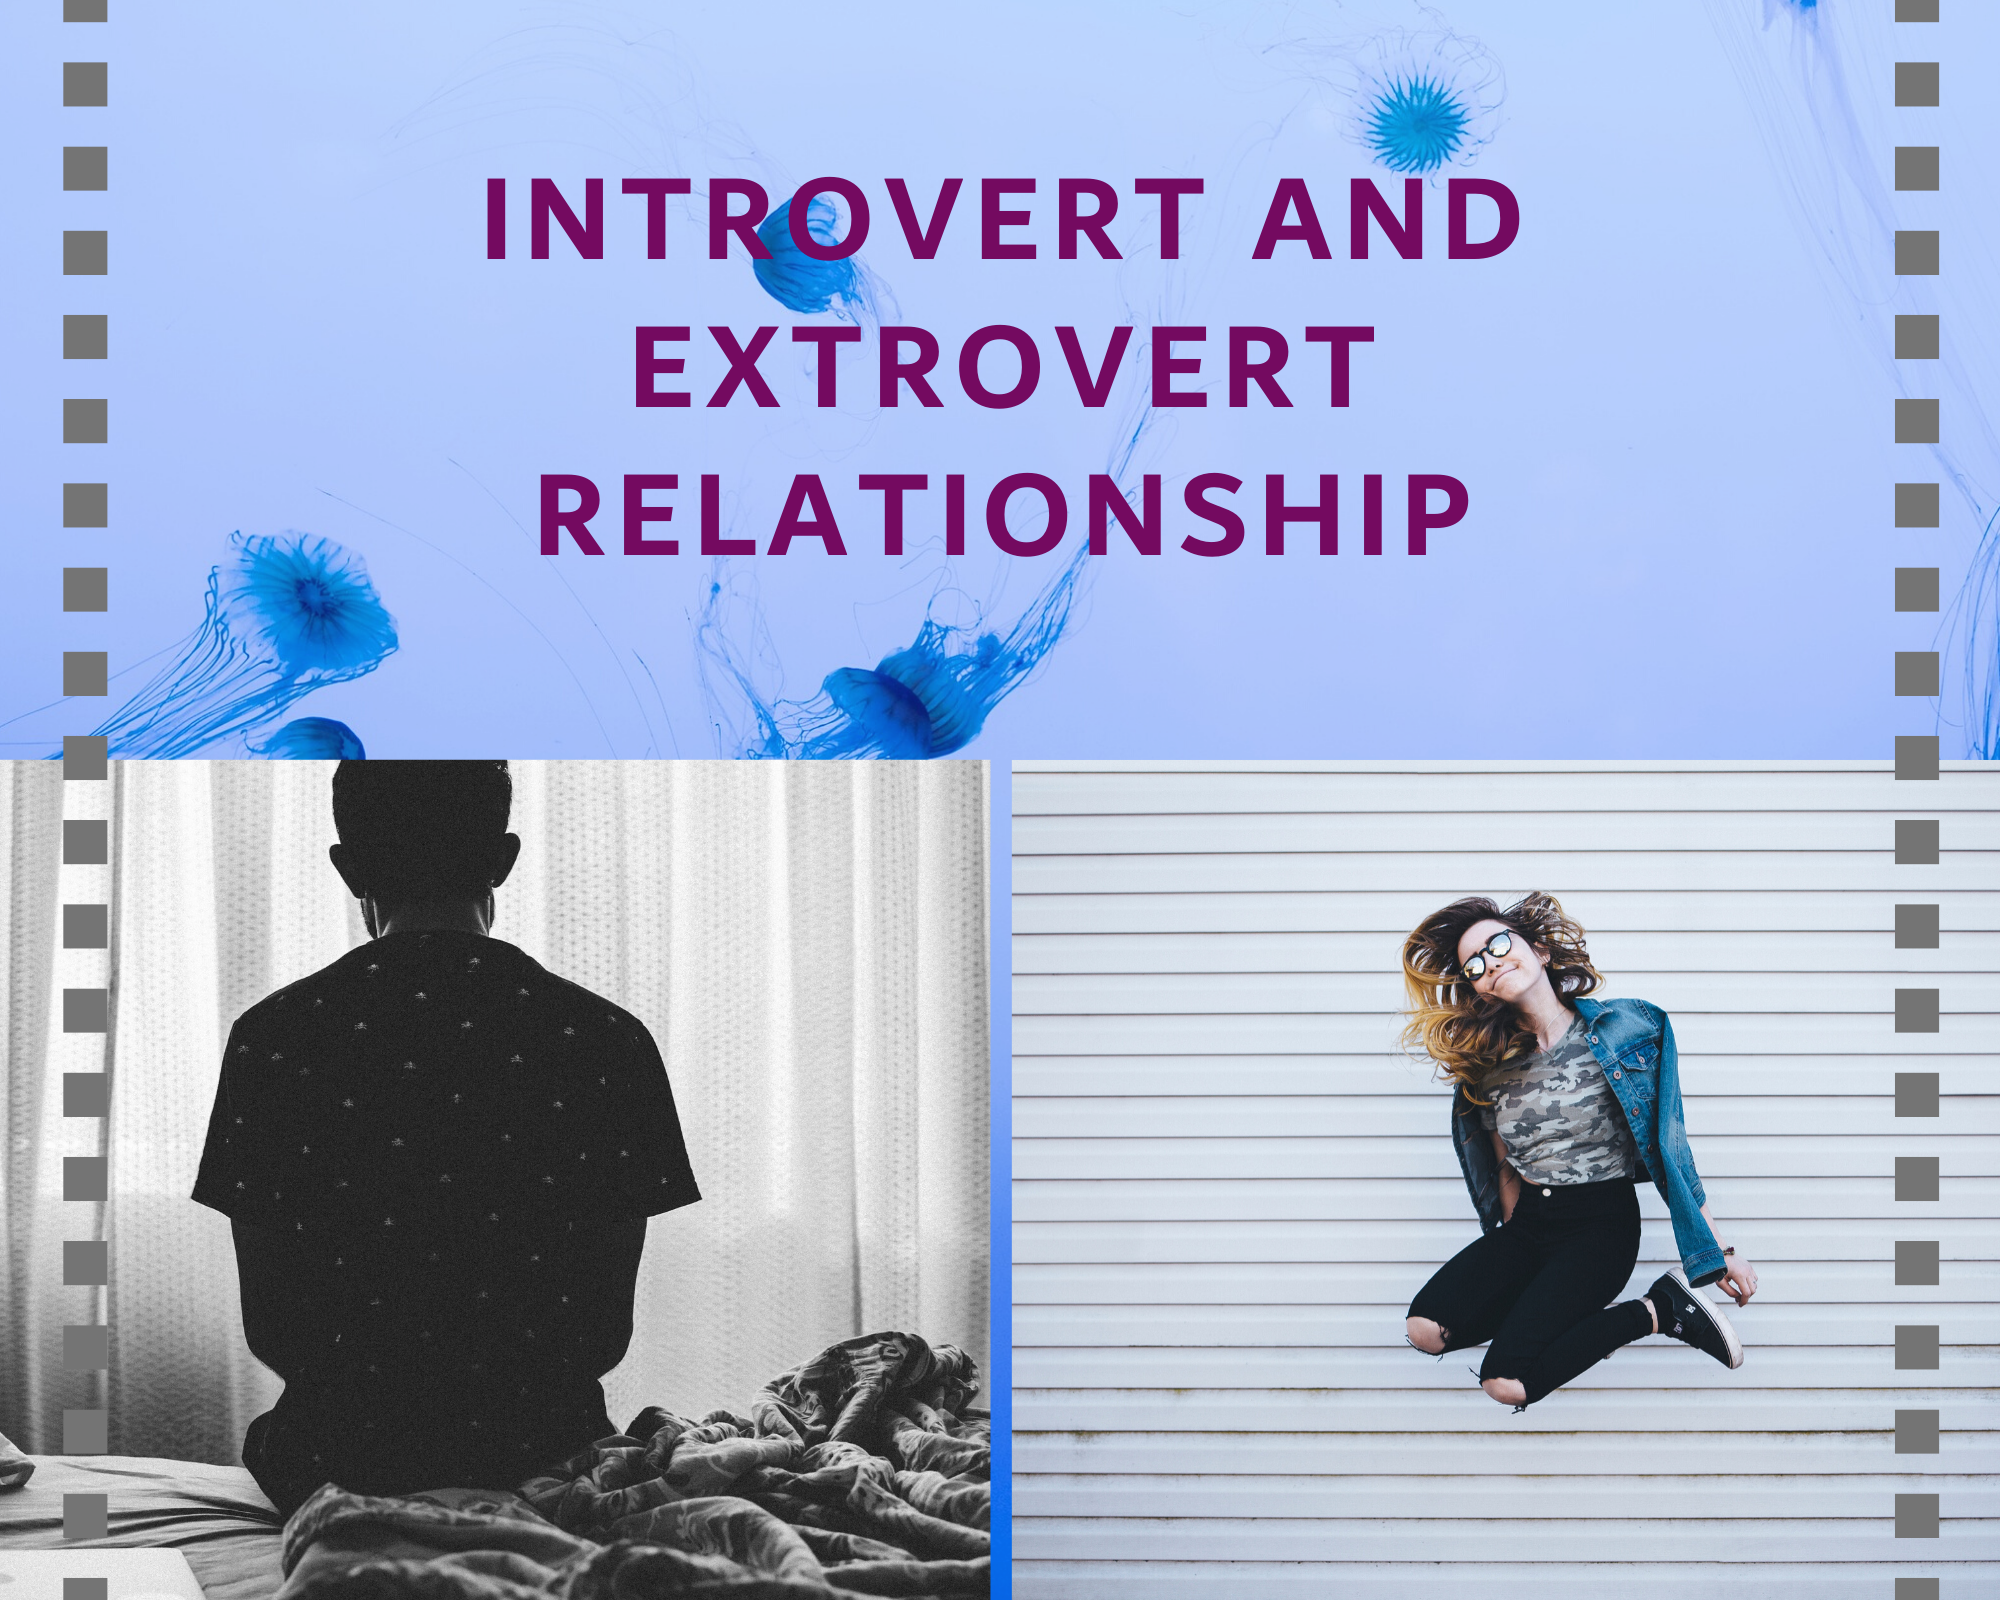 introvert and extrovert relationship